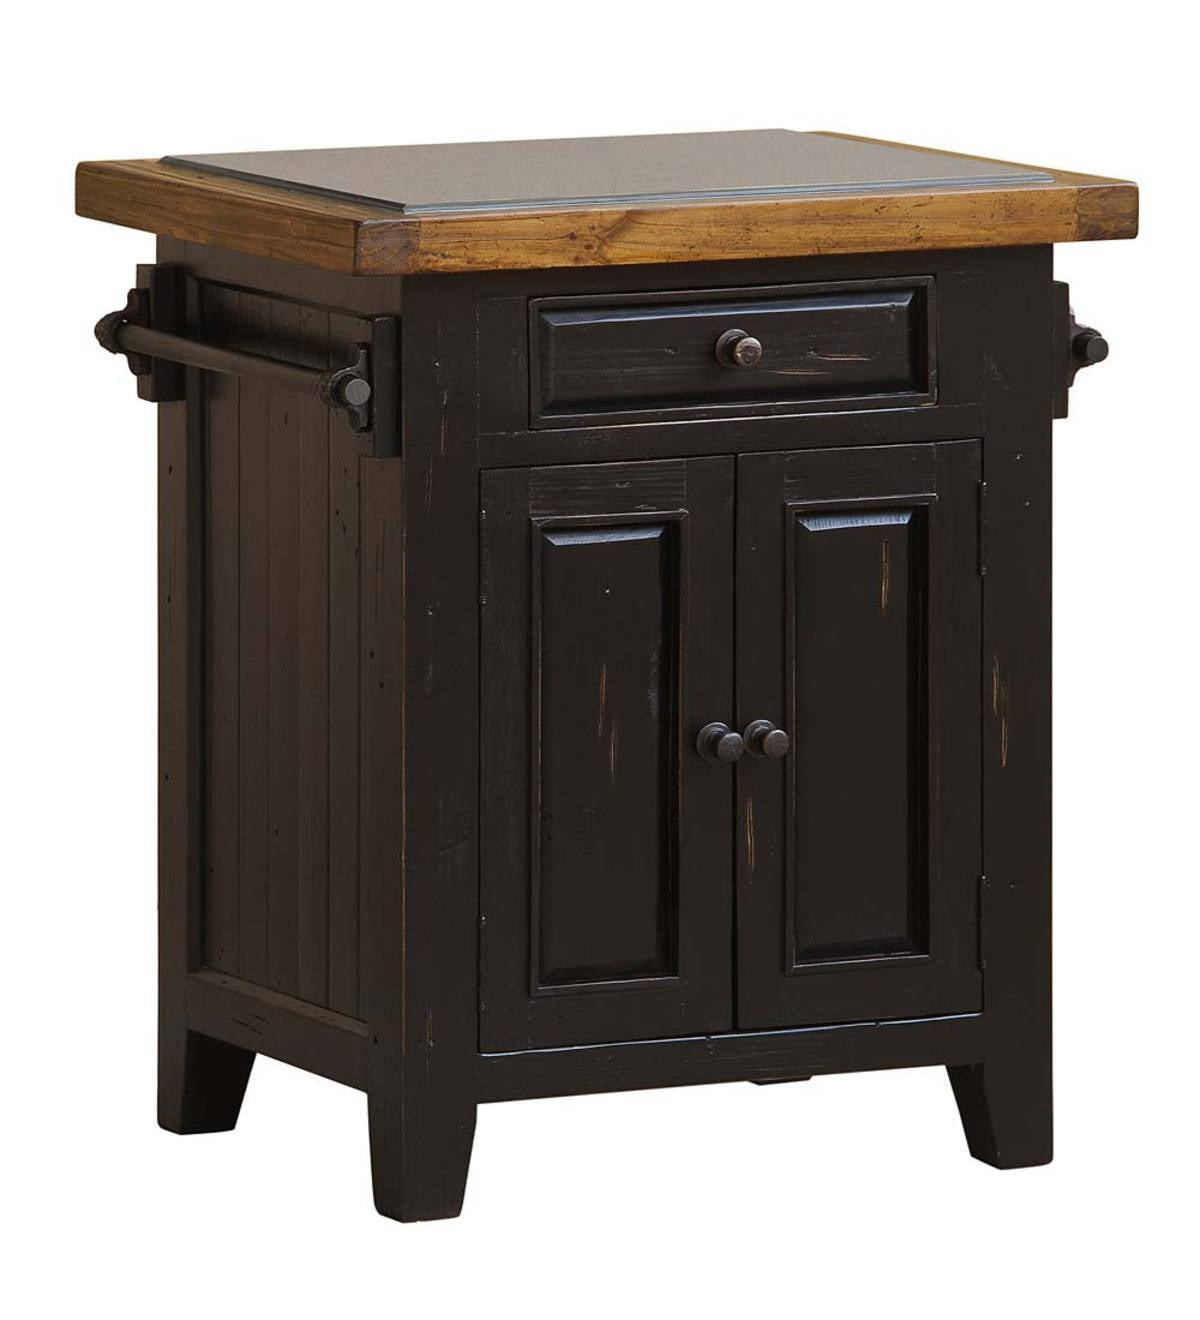 Florence Granite-Top Small Kitchen Island - Black